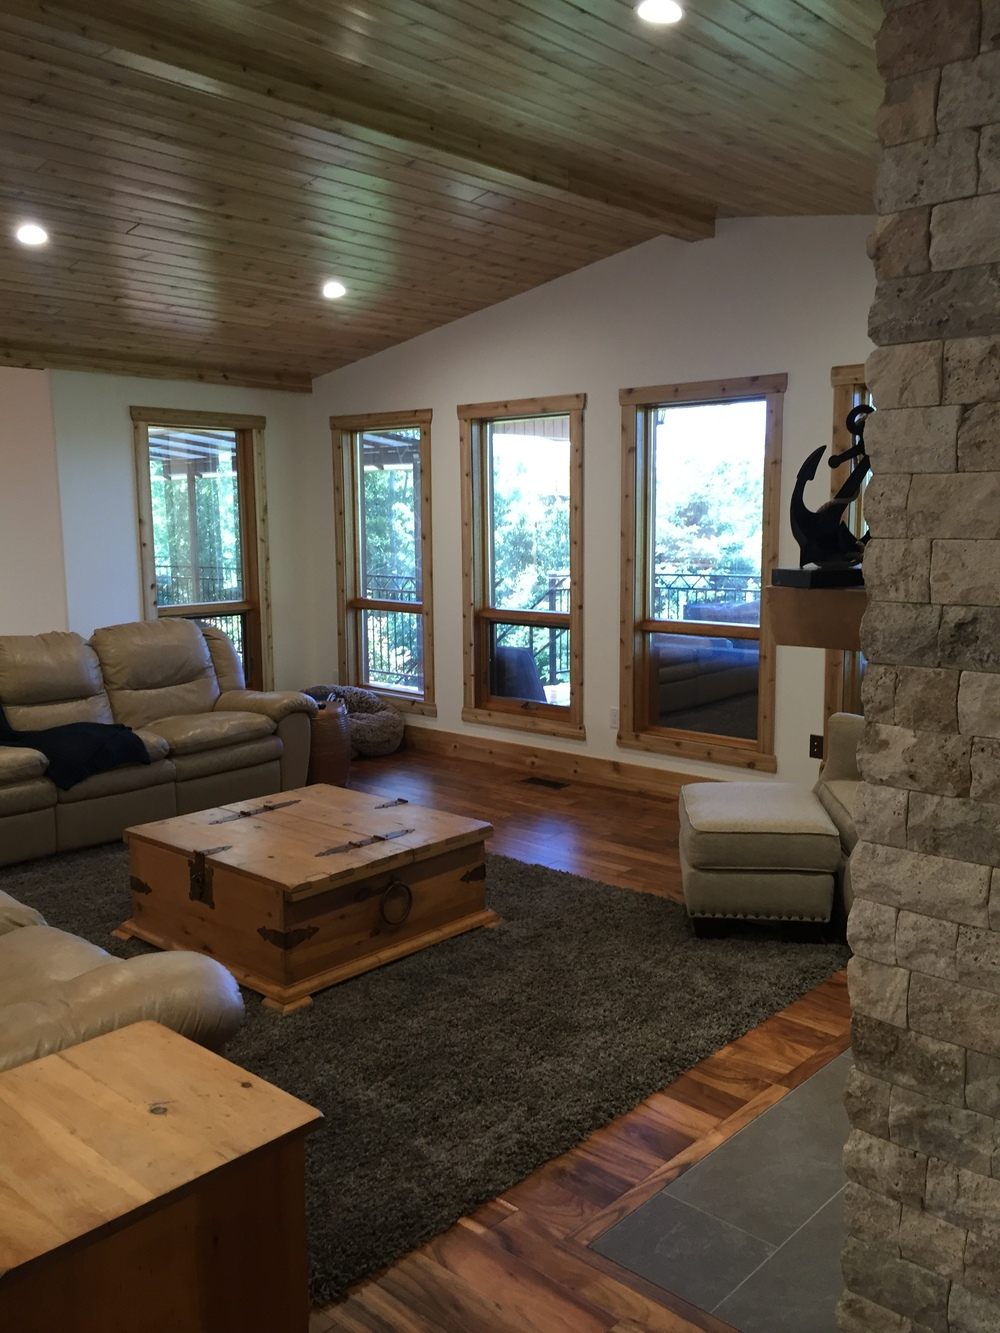 Rustic stone fireplace, cedar ceilings and window trim.